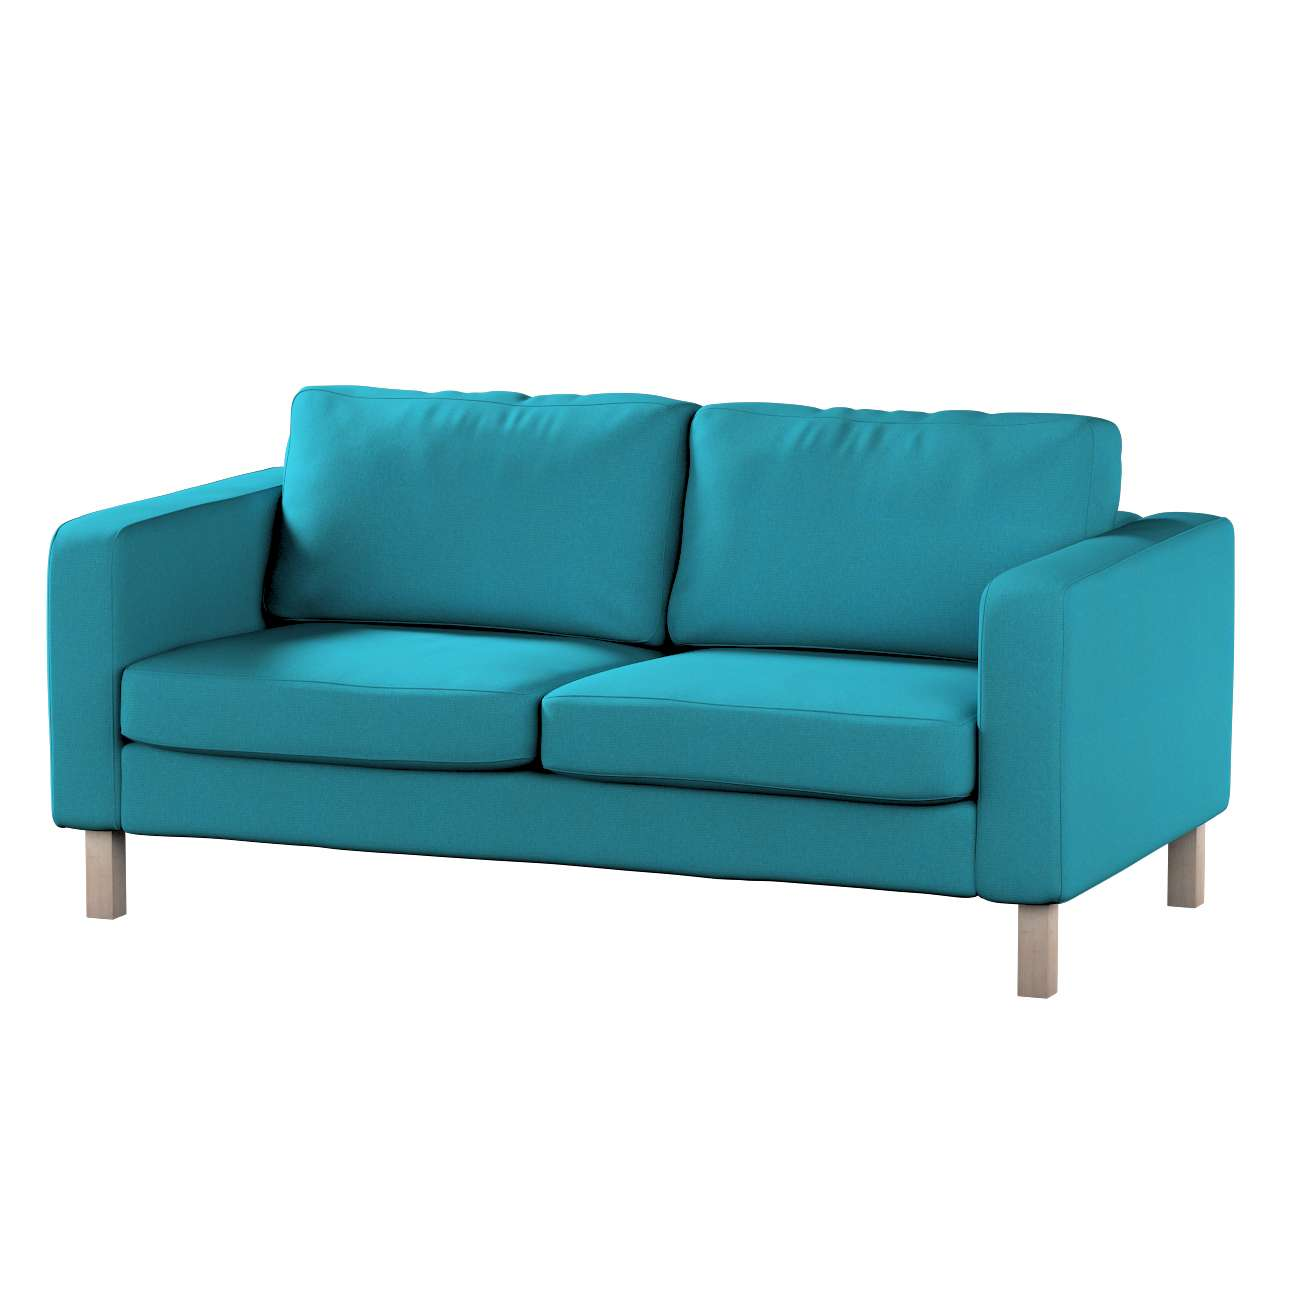 Karlstad 2-seater sofa cover in collection Etna, fabric: 705-16